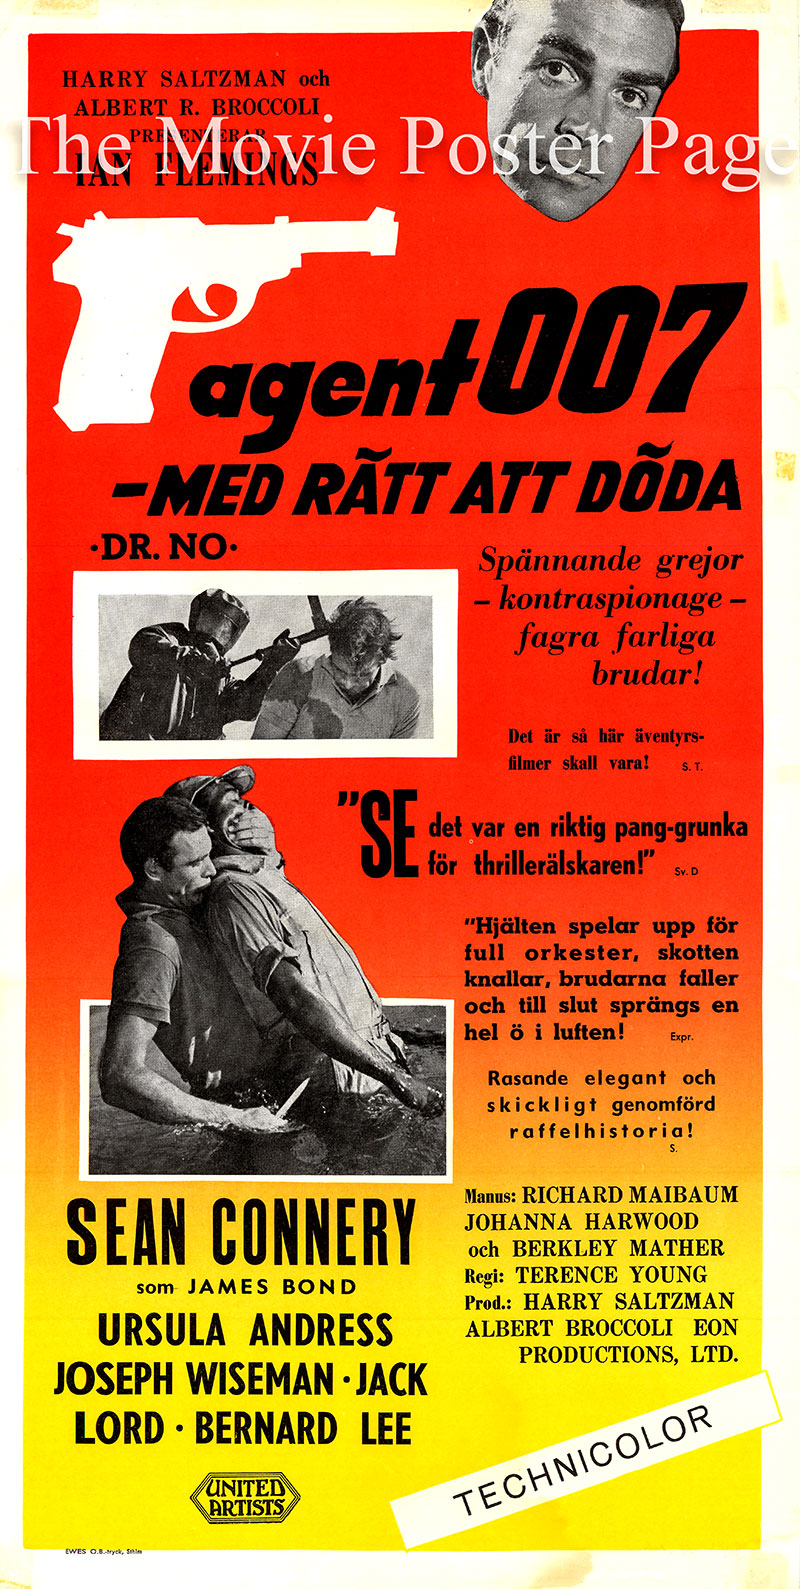 Pictured is a Swedish insert poster for a 1960s rerelease of the 1962 Terence Young film <i>Dr. No</i> based on the 1958 novel of the same title by Ian Fleming, screenplay by Richard Maibaum and Johanna Harwood and starring Sean Connery as 007.